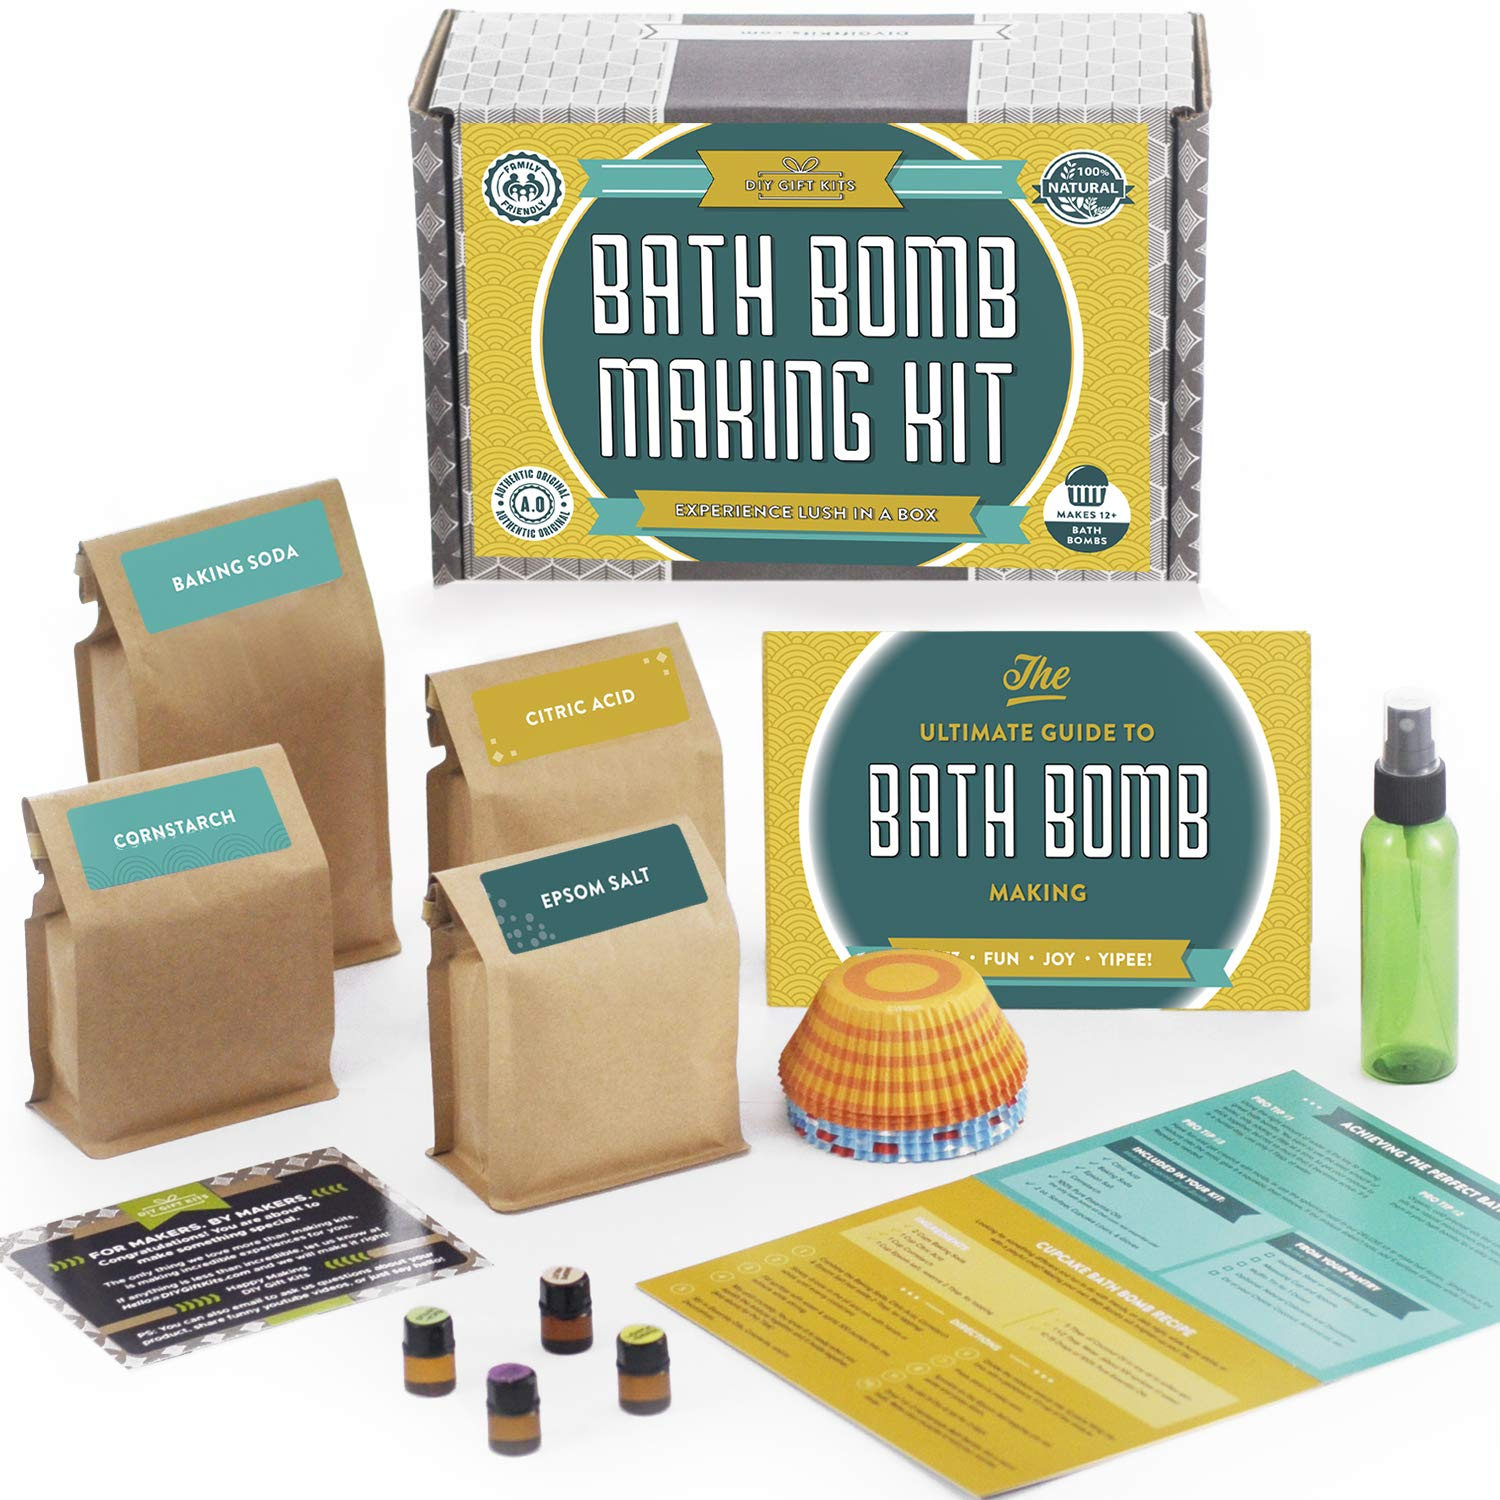 Bath Bomb Making Kit with 100% Pure Therapeutic Grade Essential Oils, (Makes 12 DIY Lush Cupcake Mold Bath Bombs), Gift Box Included. Spa In A Box Bath Bomb Kit Deluxe